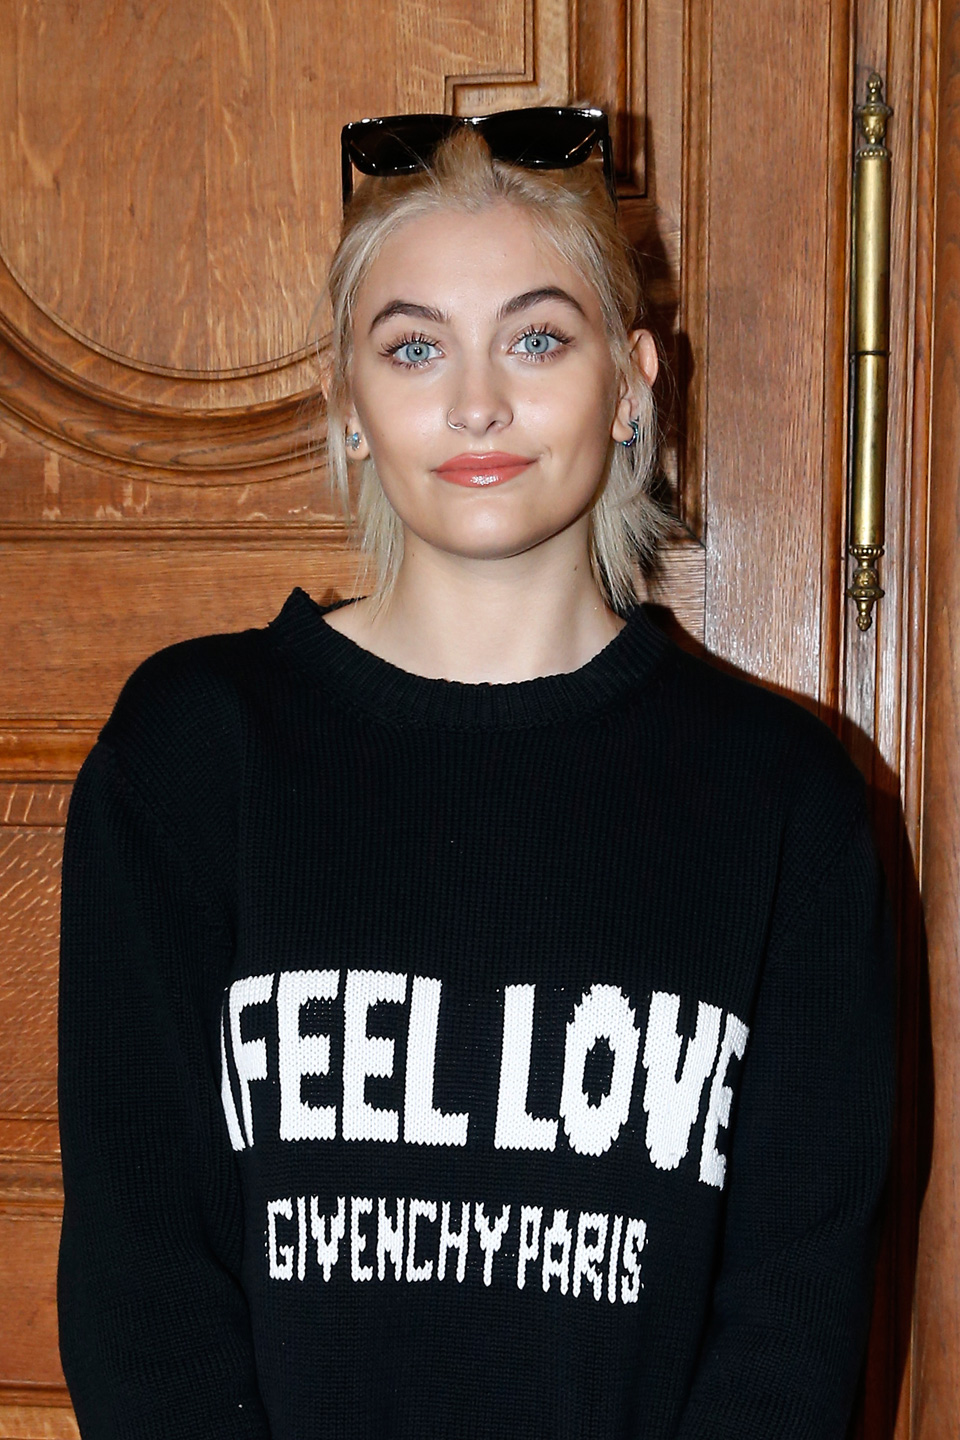 Paris Jackson in Givenche sweater